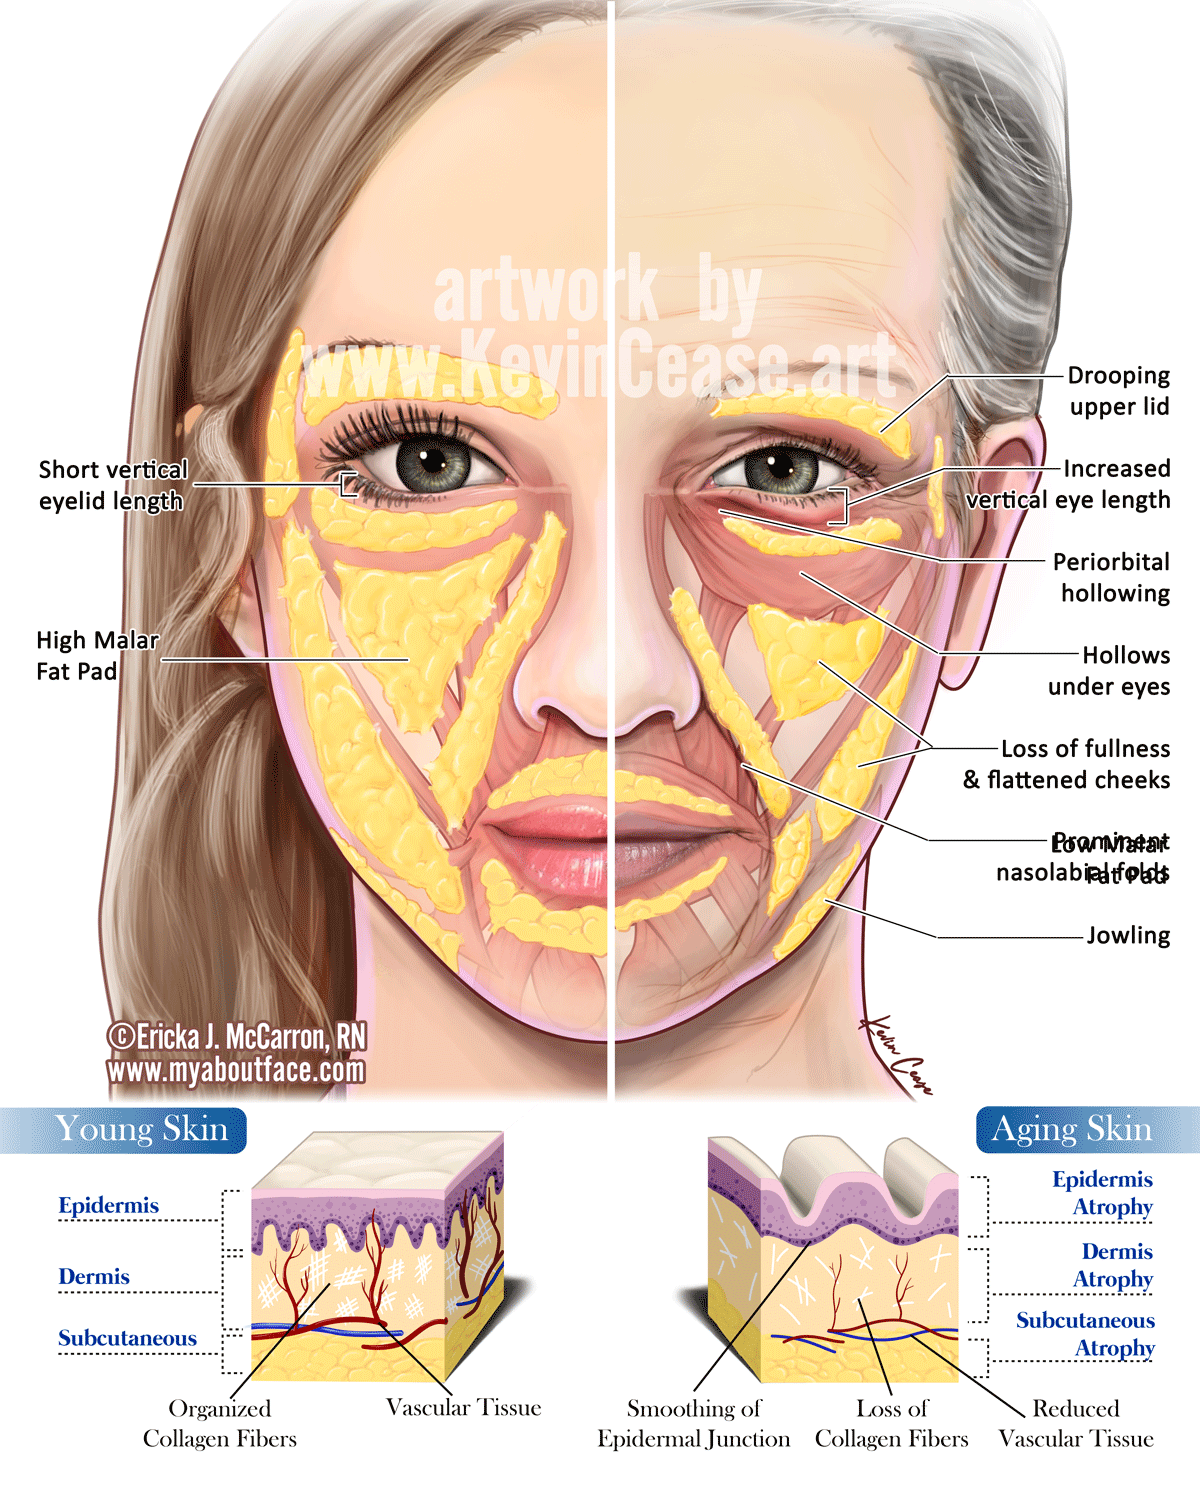 Kevin Cease Aging Skin Comparison Anatomia In 2019 Pinterest